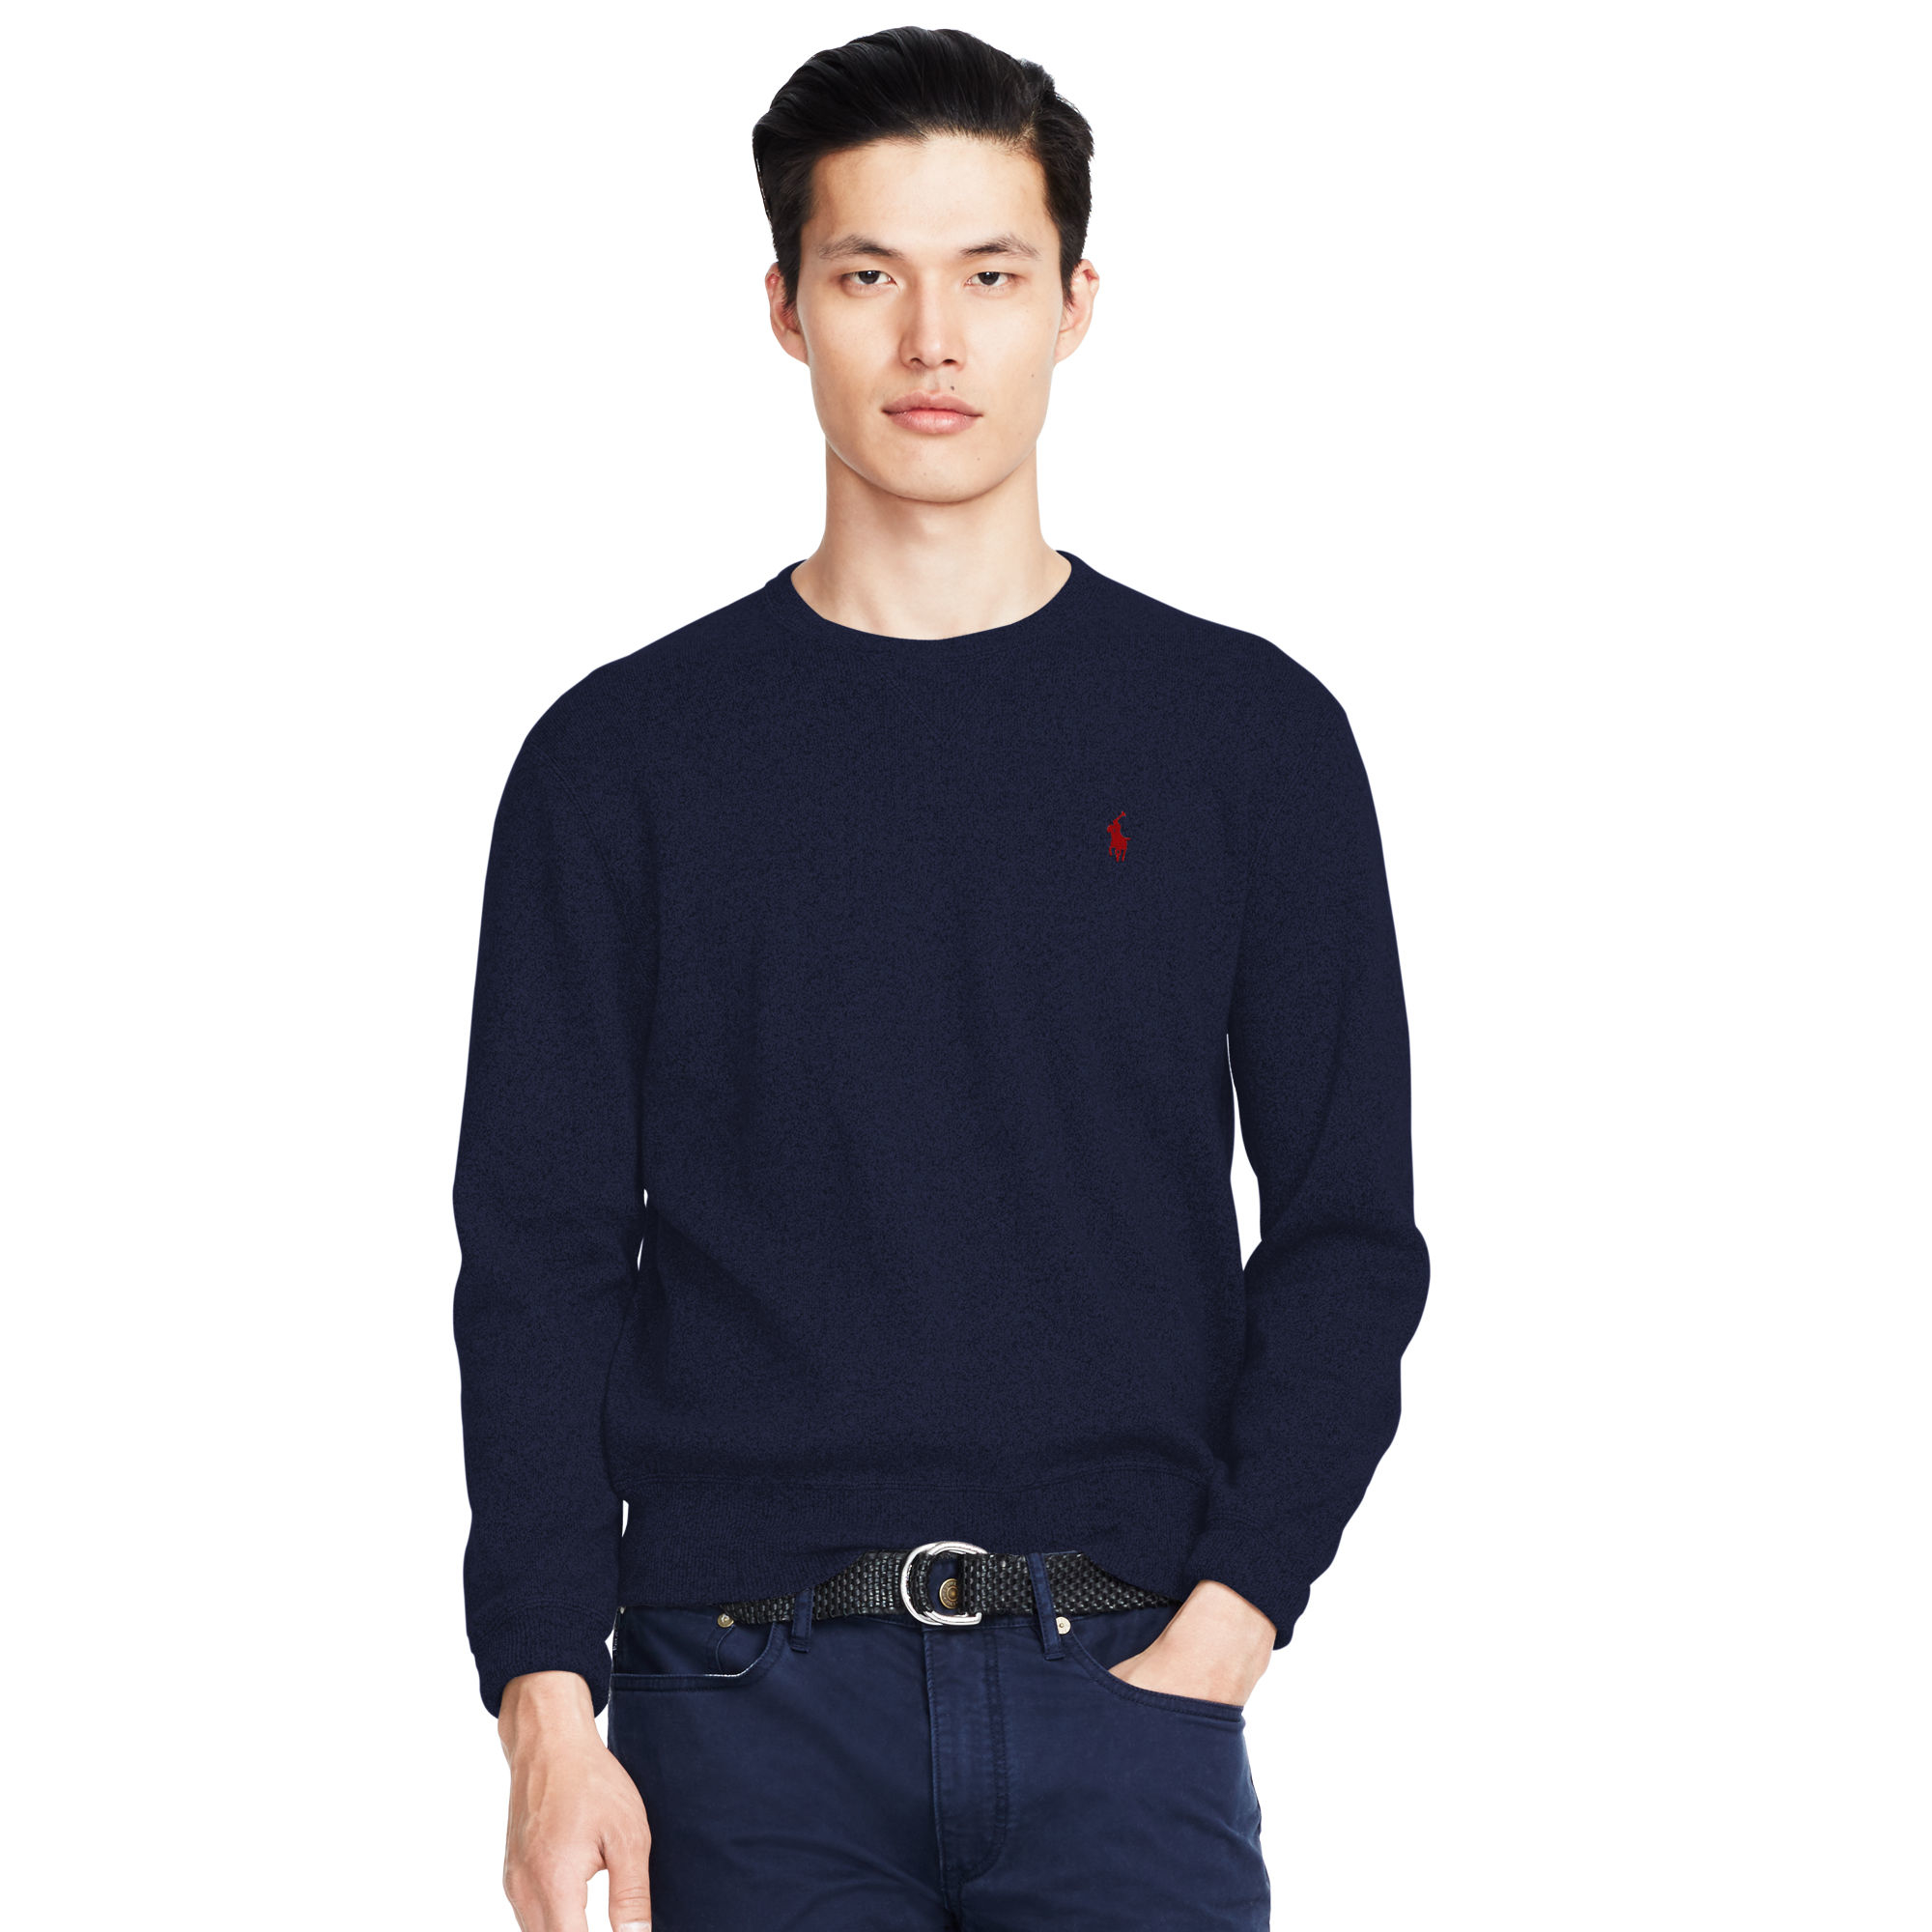 Polo ralph lauren Cotton Crewneck Sweater in Blue for Men | Lyst